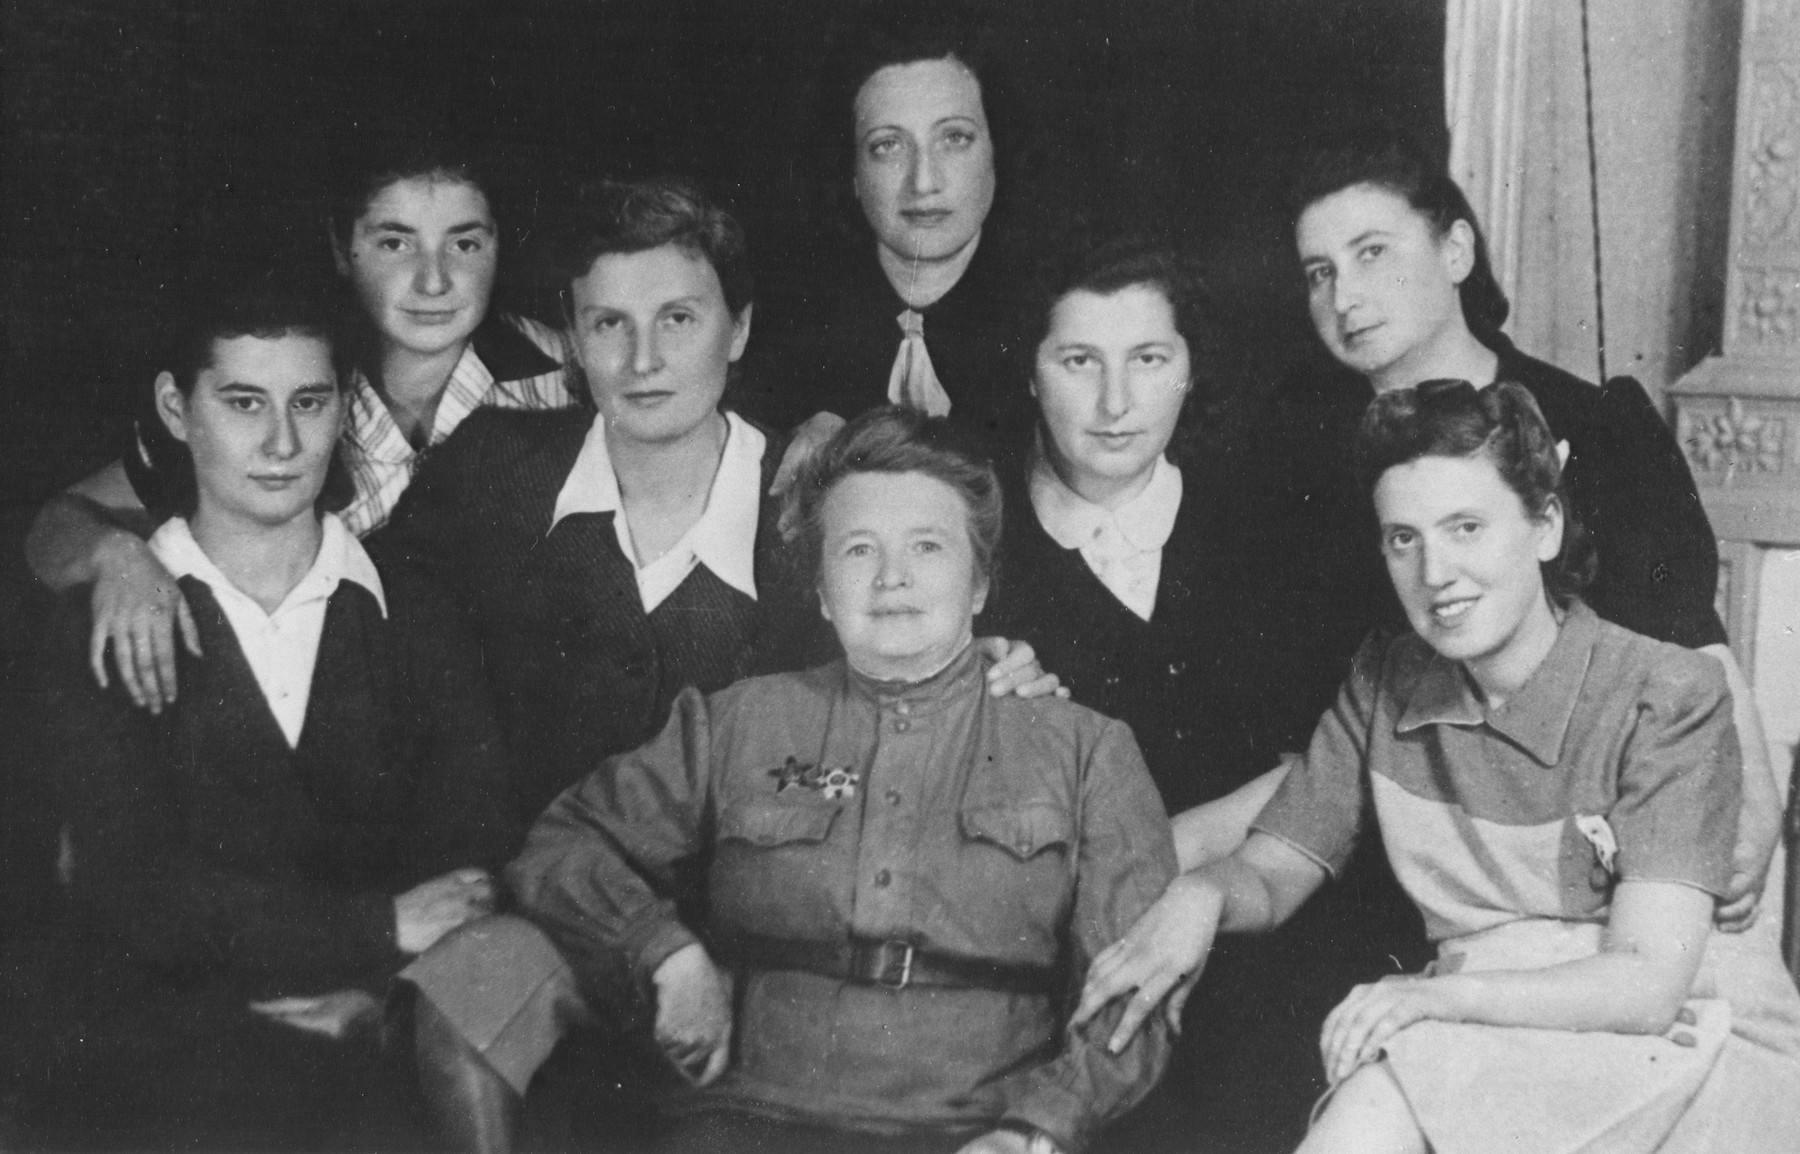 A group of female Jewish survivors pose with Dr. Nisenevitch, a Soviet army physician who befriended them and nursed them back to health.  Pictured are Fanya Szuster, Ita Shapiro, Katia Magid, Grossman and Diamentman, and Dr. Nisenevitch (center front).